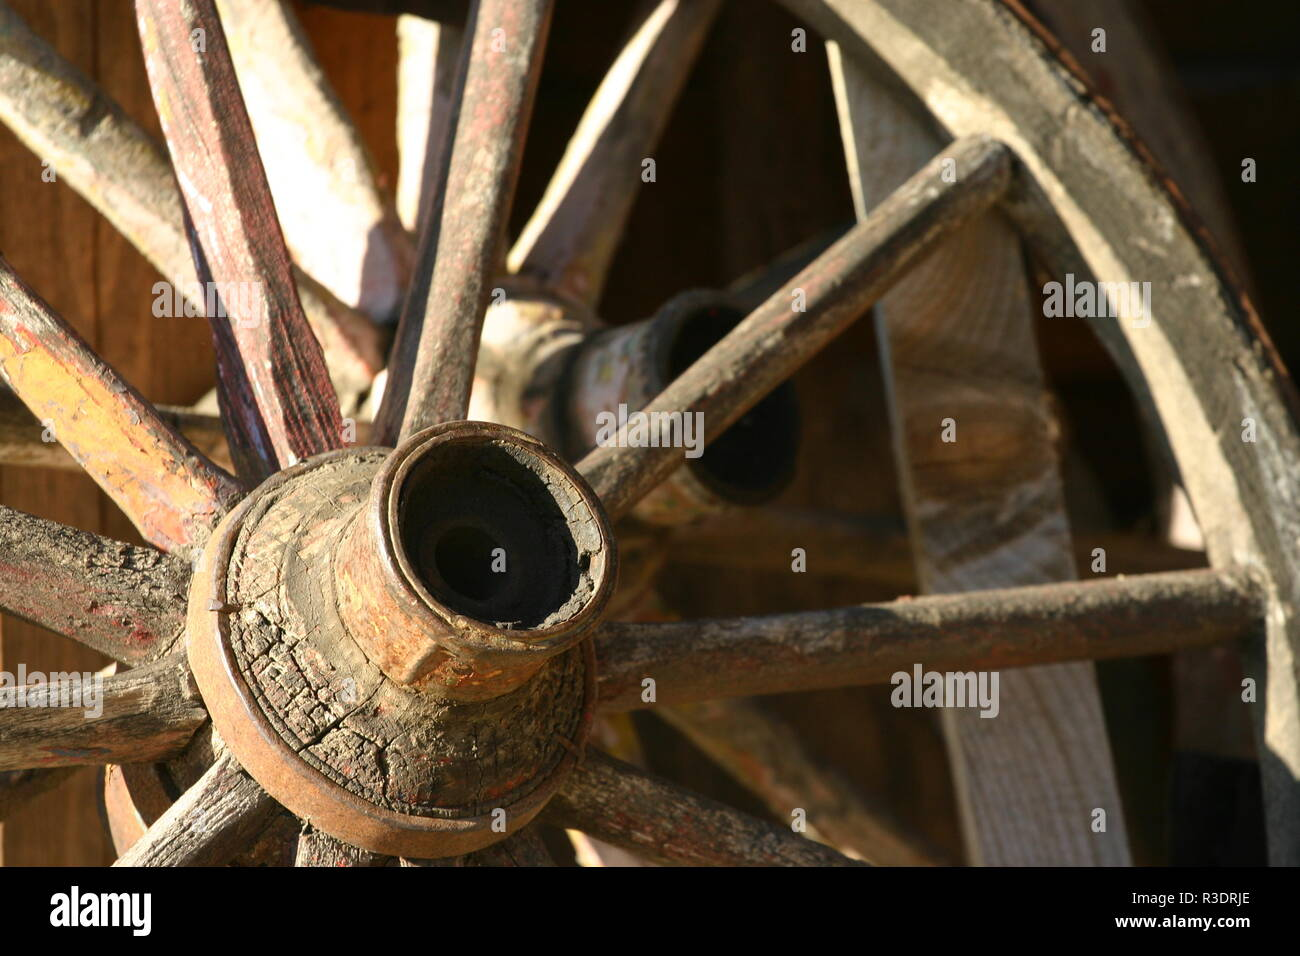 A shot at an old wooden cartweel. - Stock Image